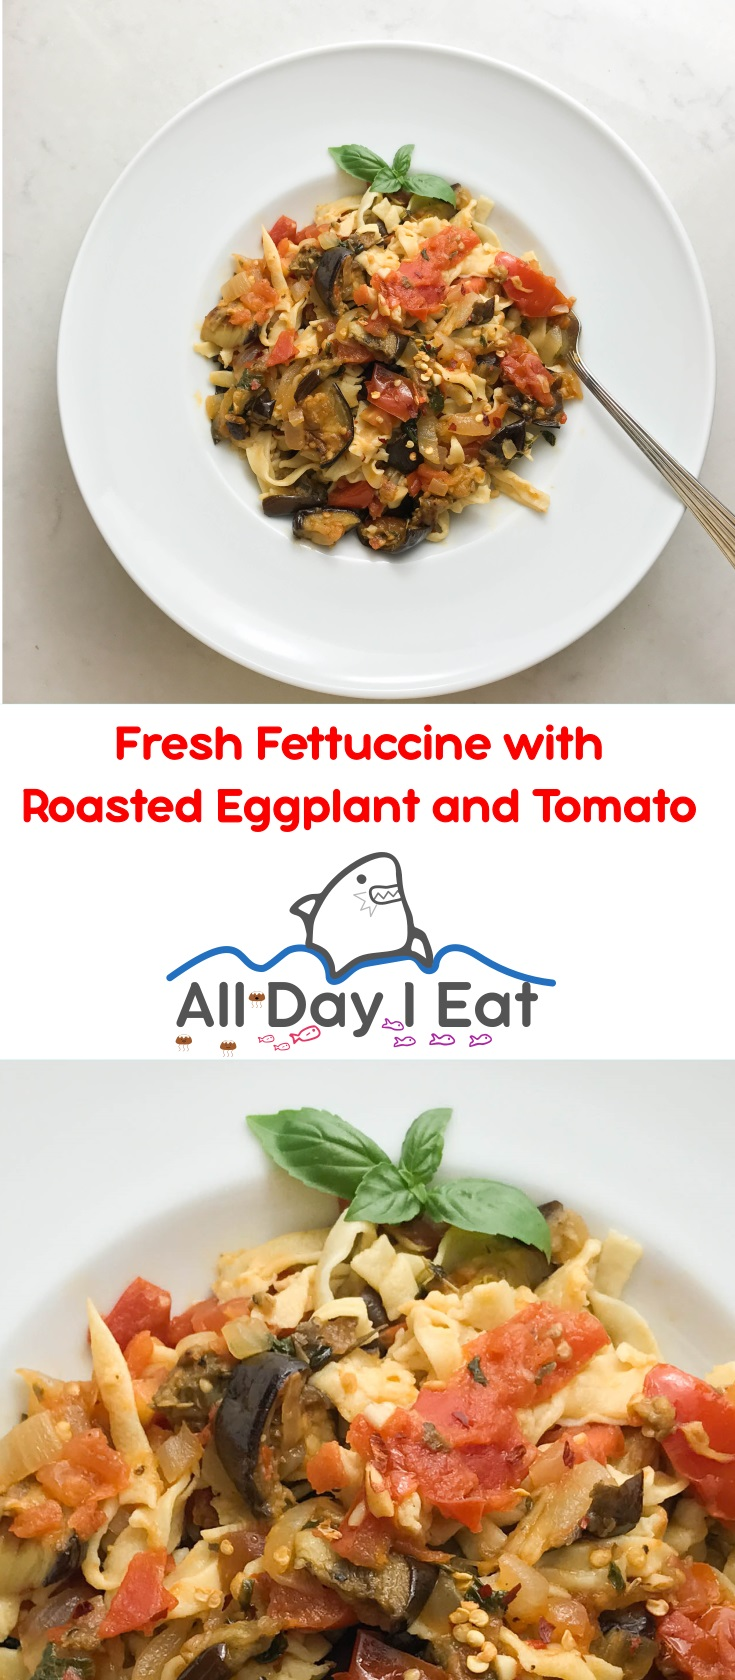 Fresh Fettuccine with Roasted Eggplant and Tomato - A simple and delicious Pasta with Impressive Taste! | www.alldayieat.com